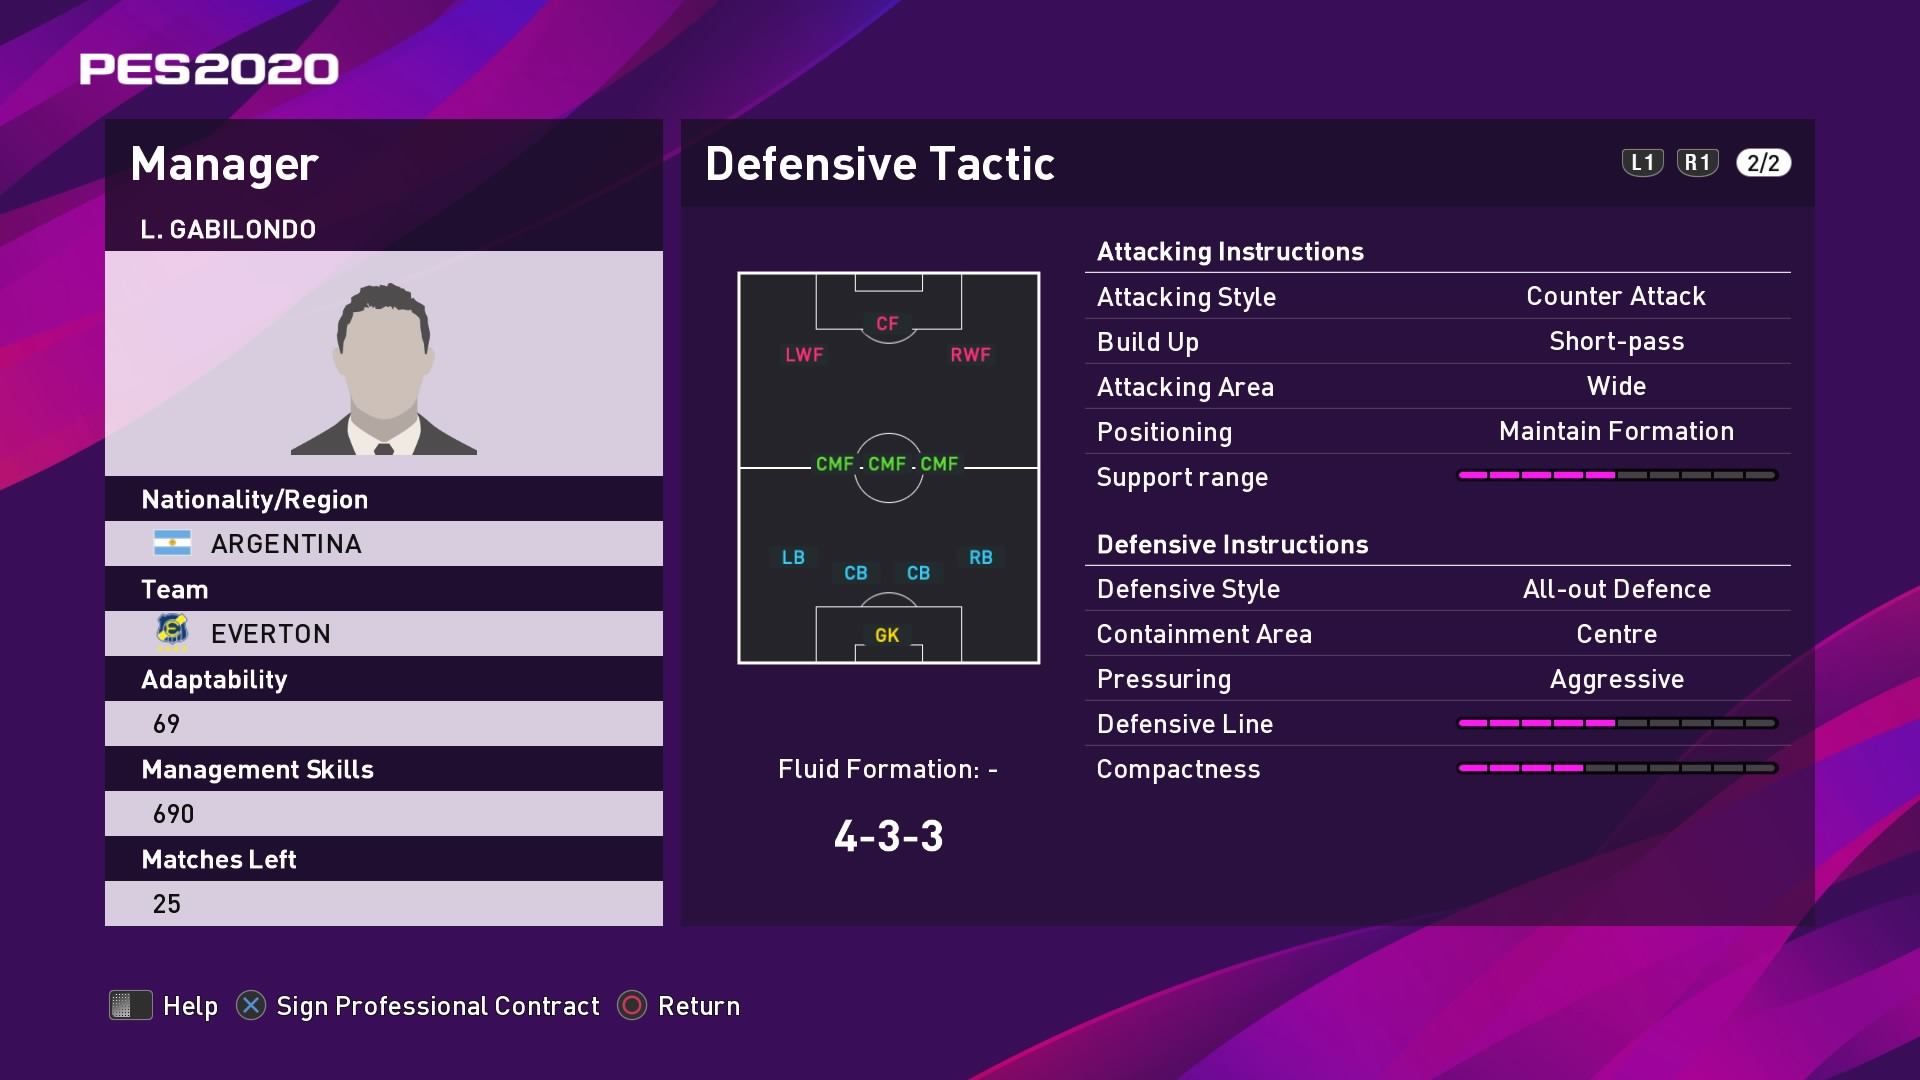 L. Gabilondo (javier Torrente) Defensive Tactic in PES 2020 myClub